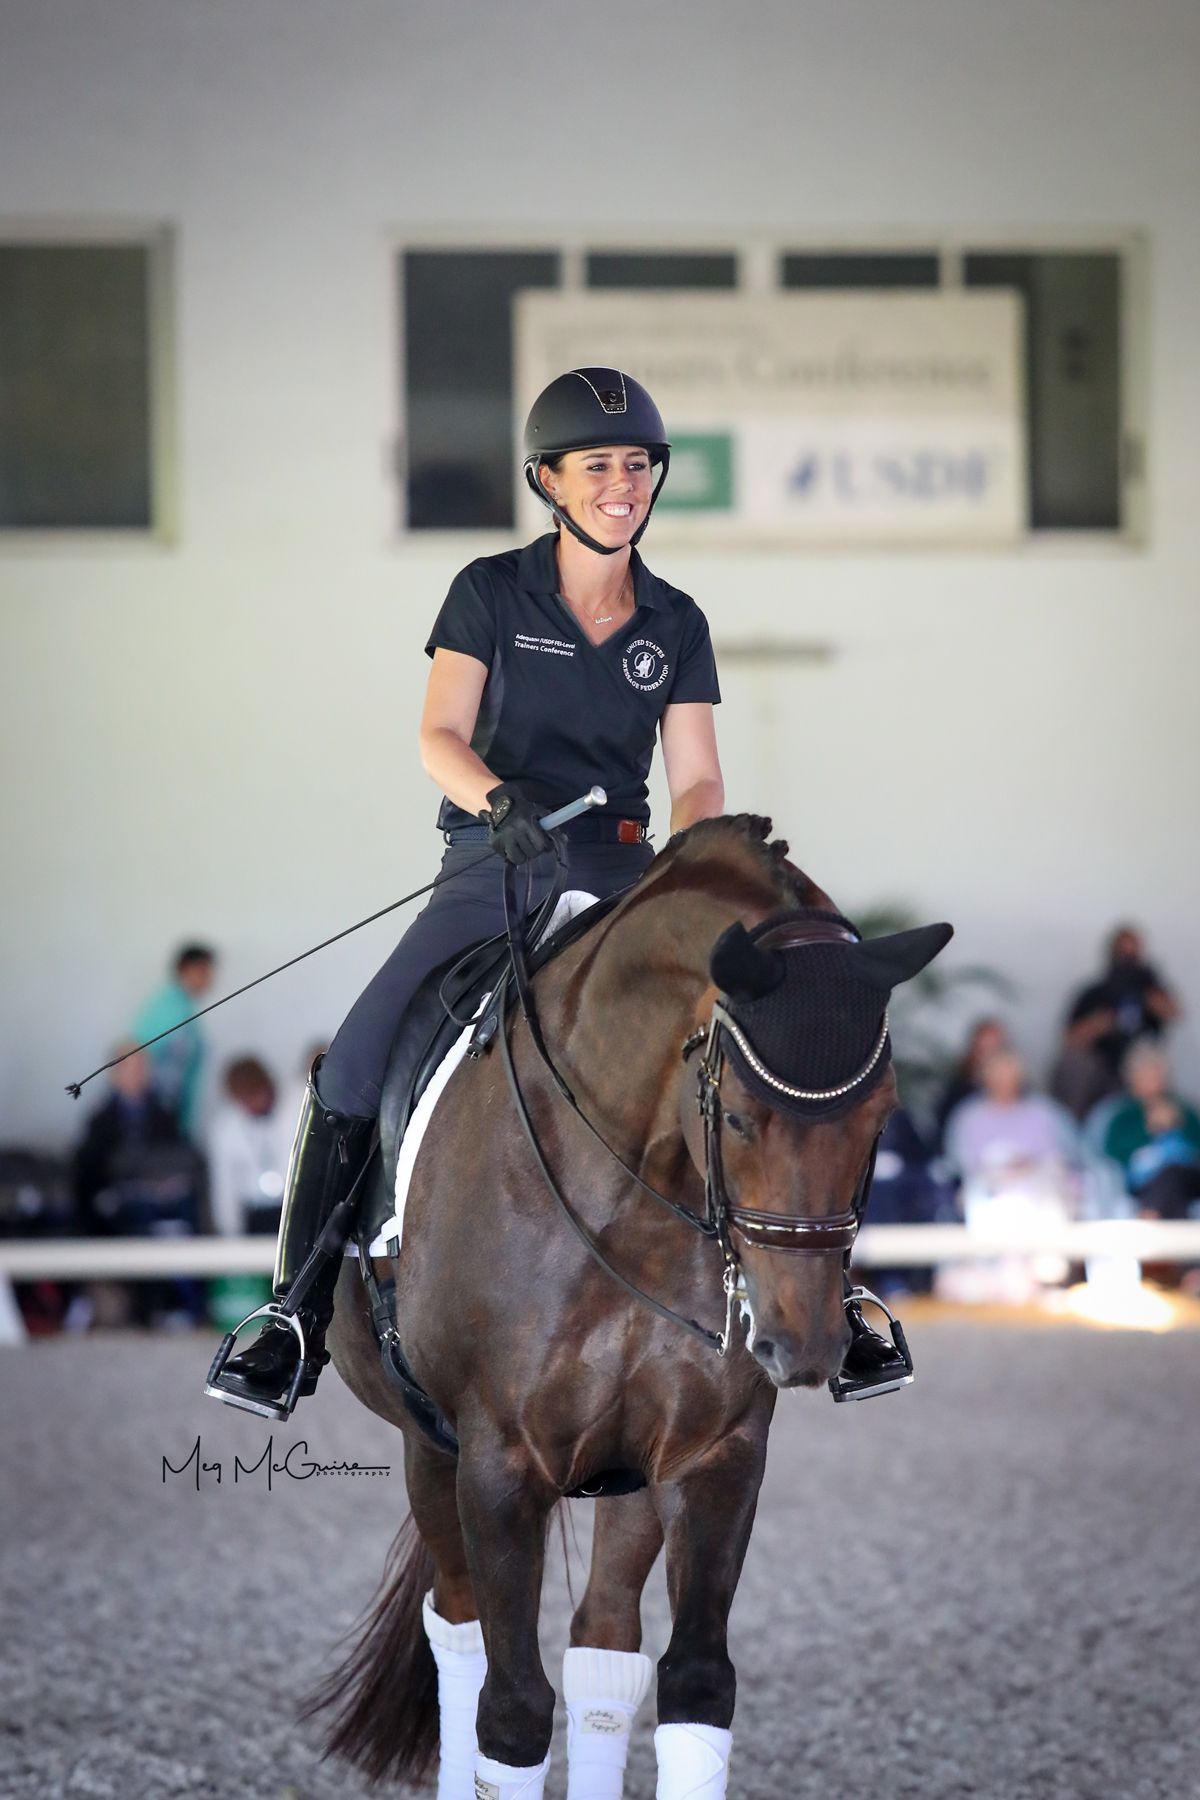 Kasey Perry Glass and Mistico at the 2020 USDF Trainers Conference. Meg McGuire Equine Photography